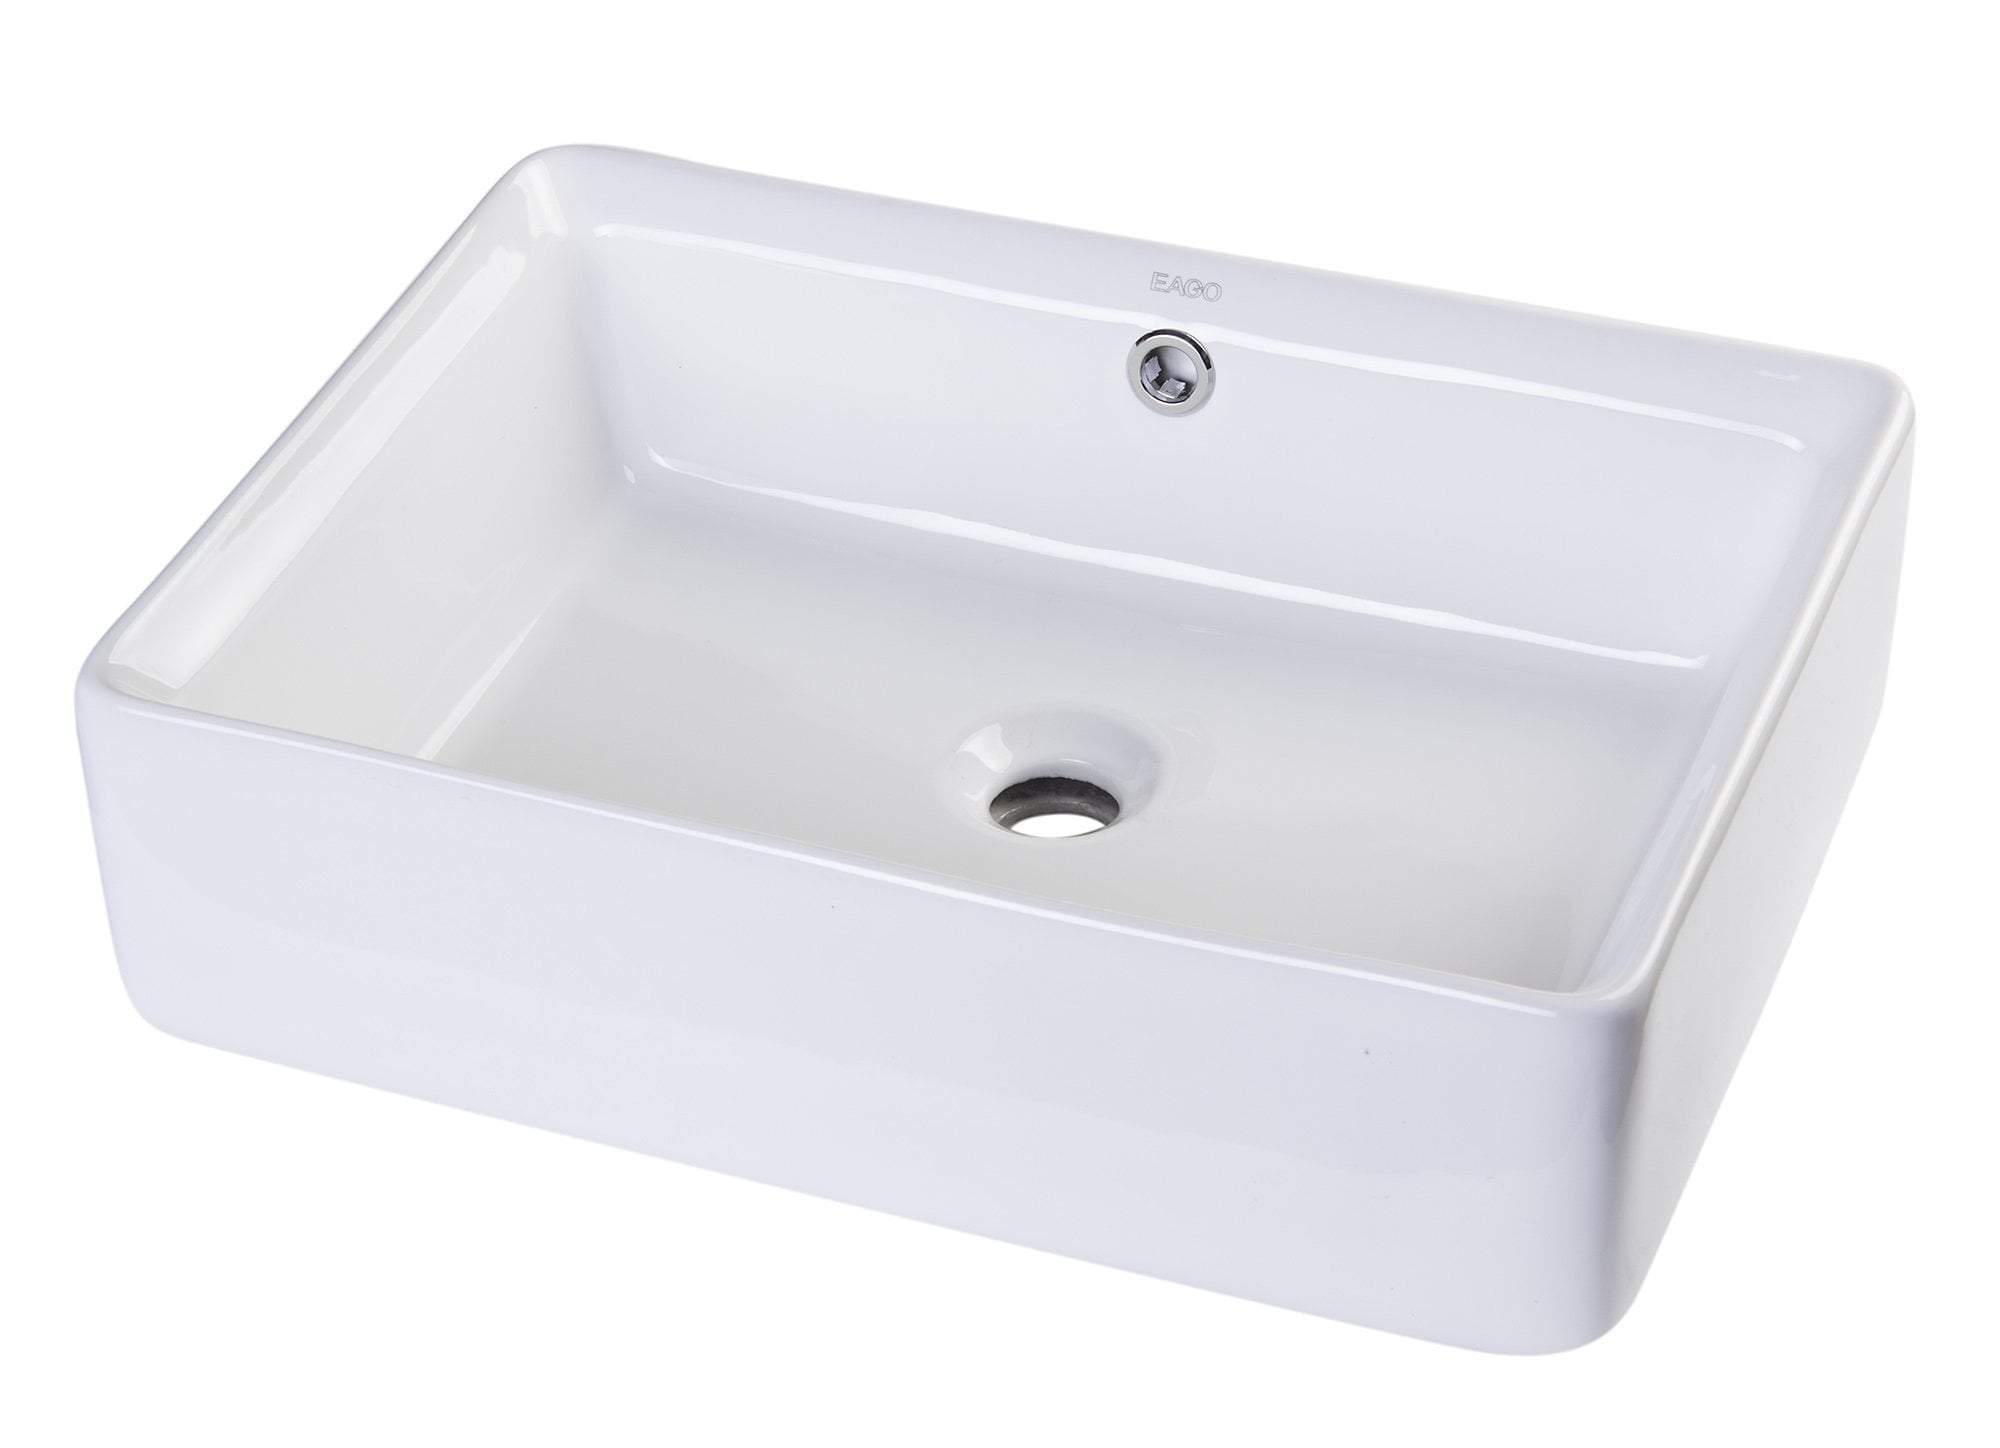 "20"" RECTANGULAR CERAMIC ABOVE MOUNT BASIN VESSEL SINK"